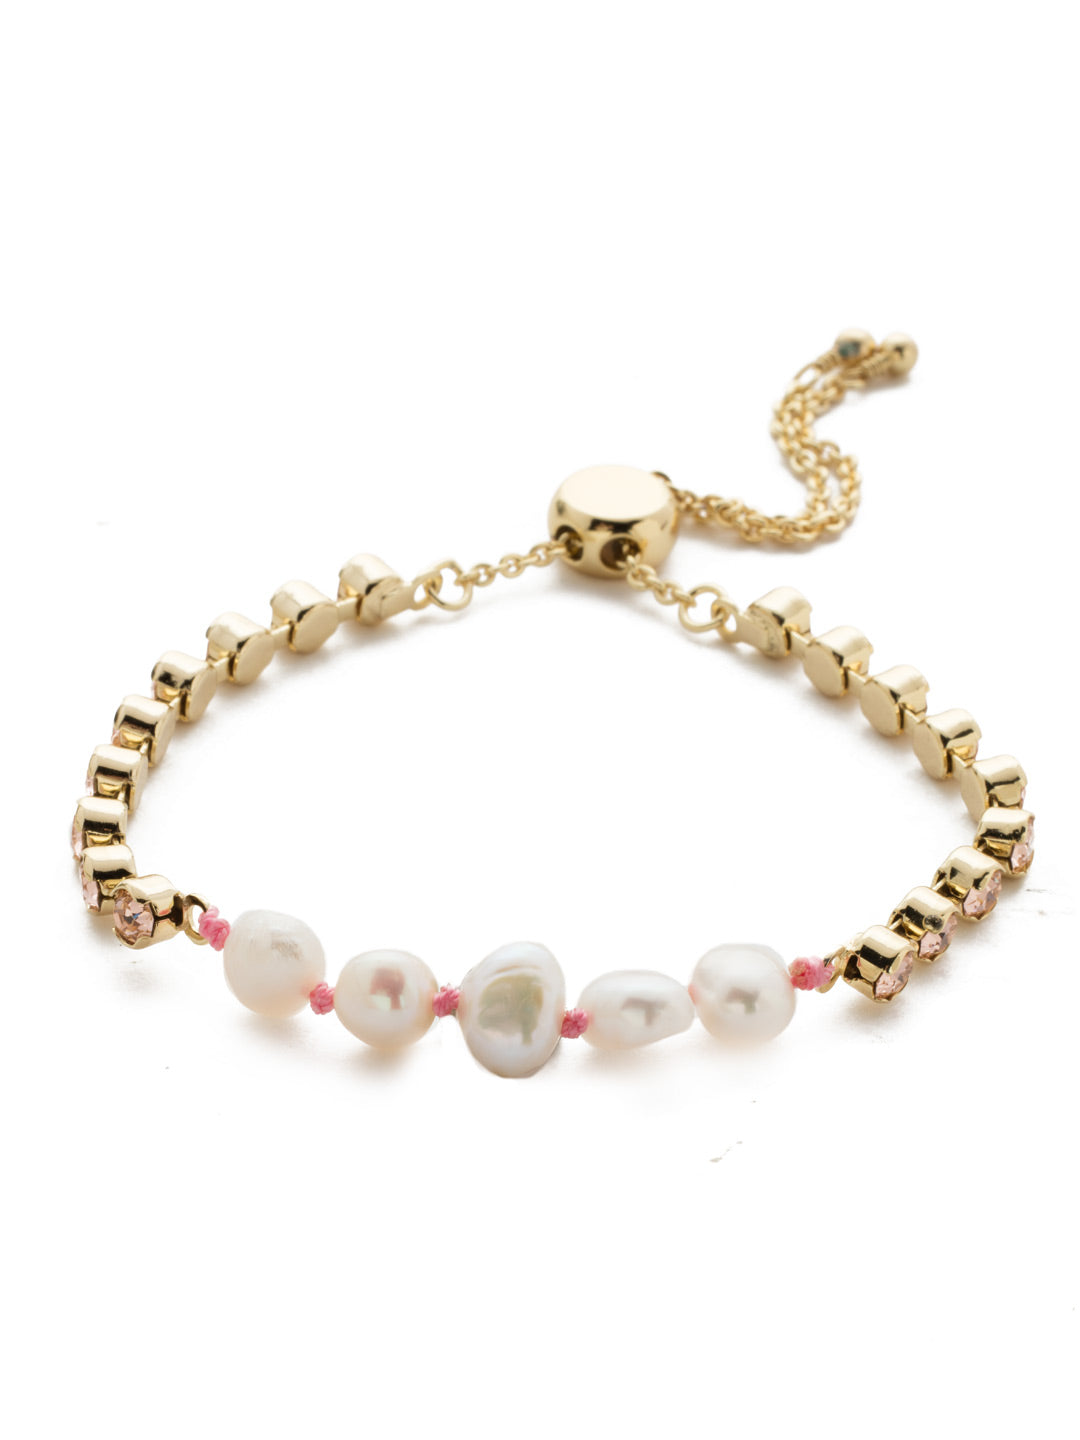 Pride & Joy Slider Bracelet - BEK5BGISS